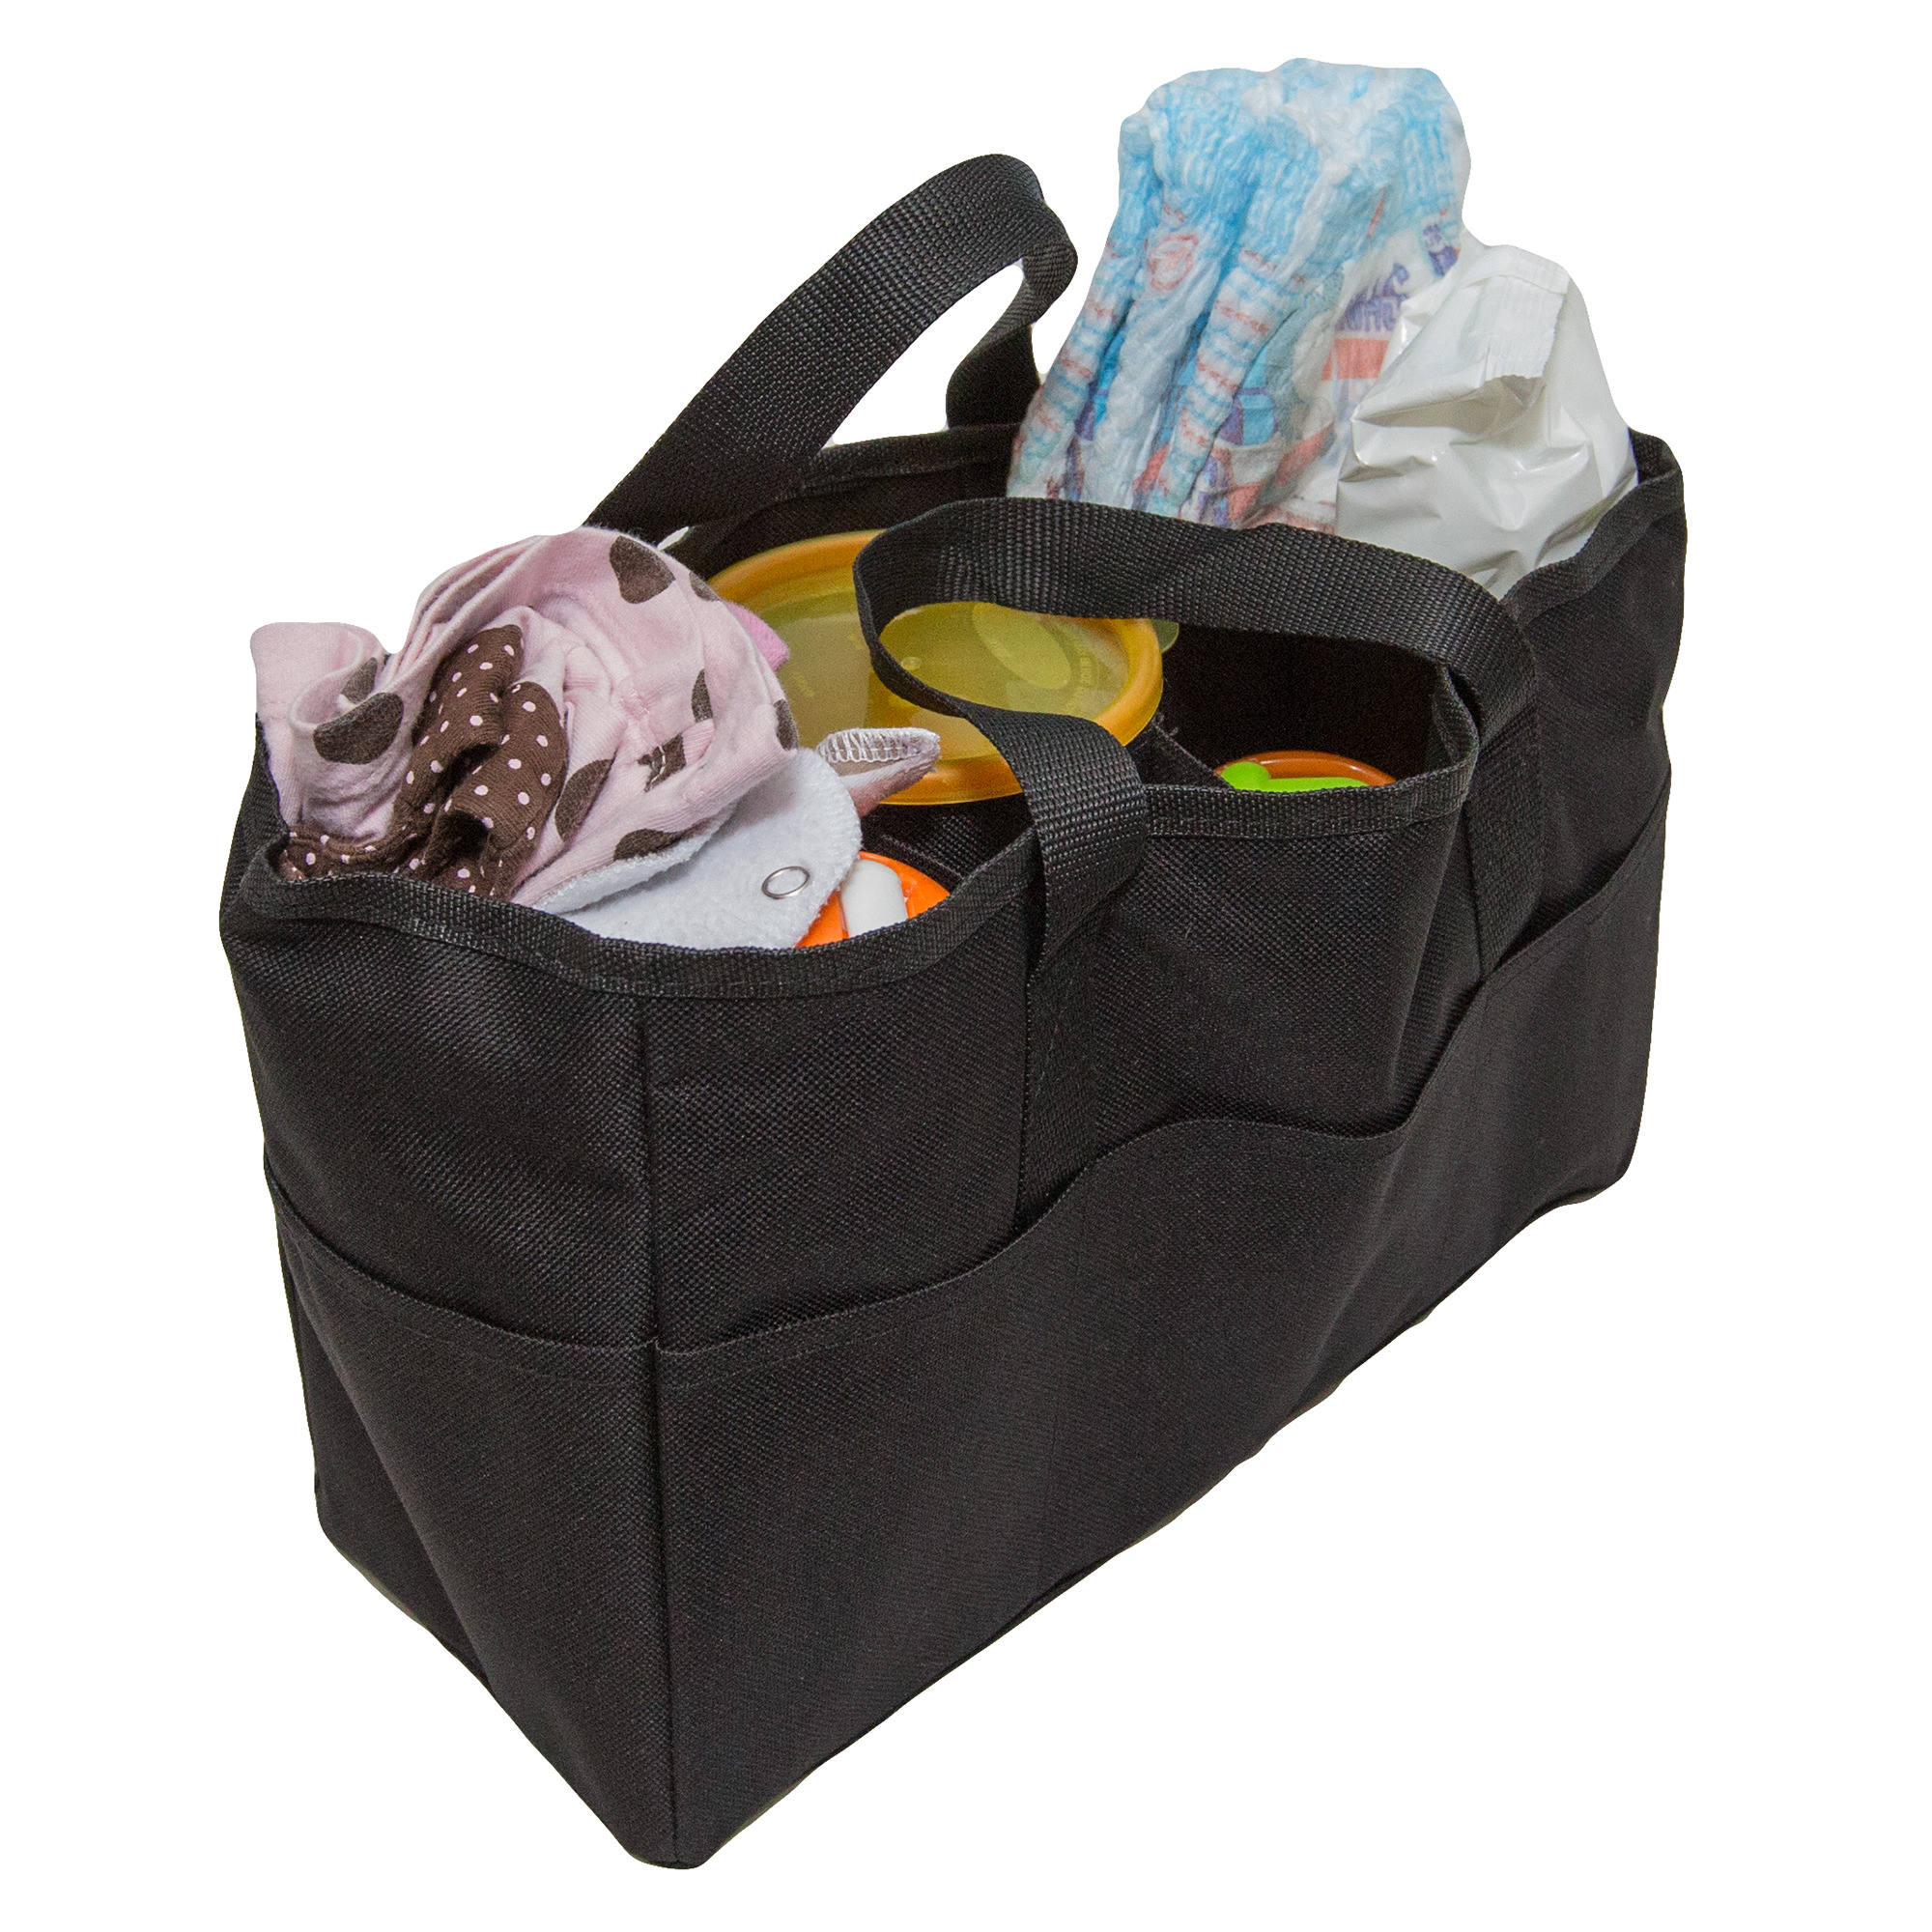 Mommy Knows Best Diaper Bag Insert Organizer for Mom with 5 Outside & 6 Inside Storage Pockets - Transform Any Mom's Purse, Handbag, Backpack, or Tote Bag